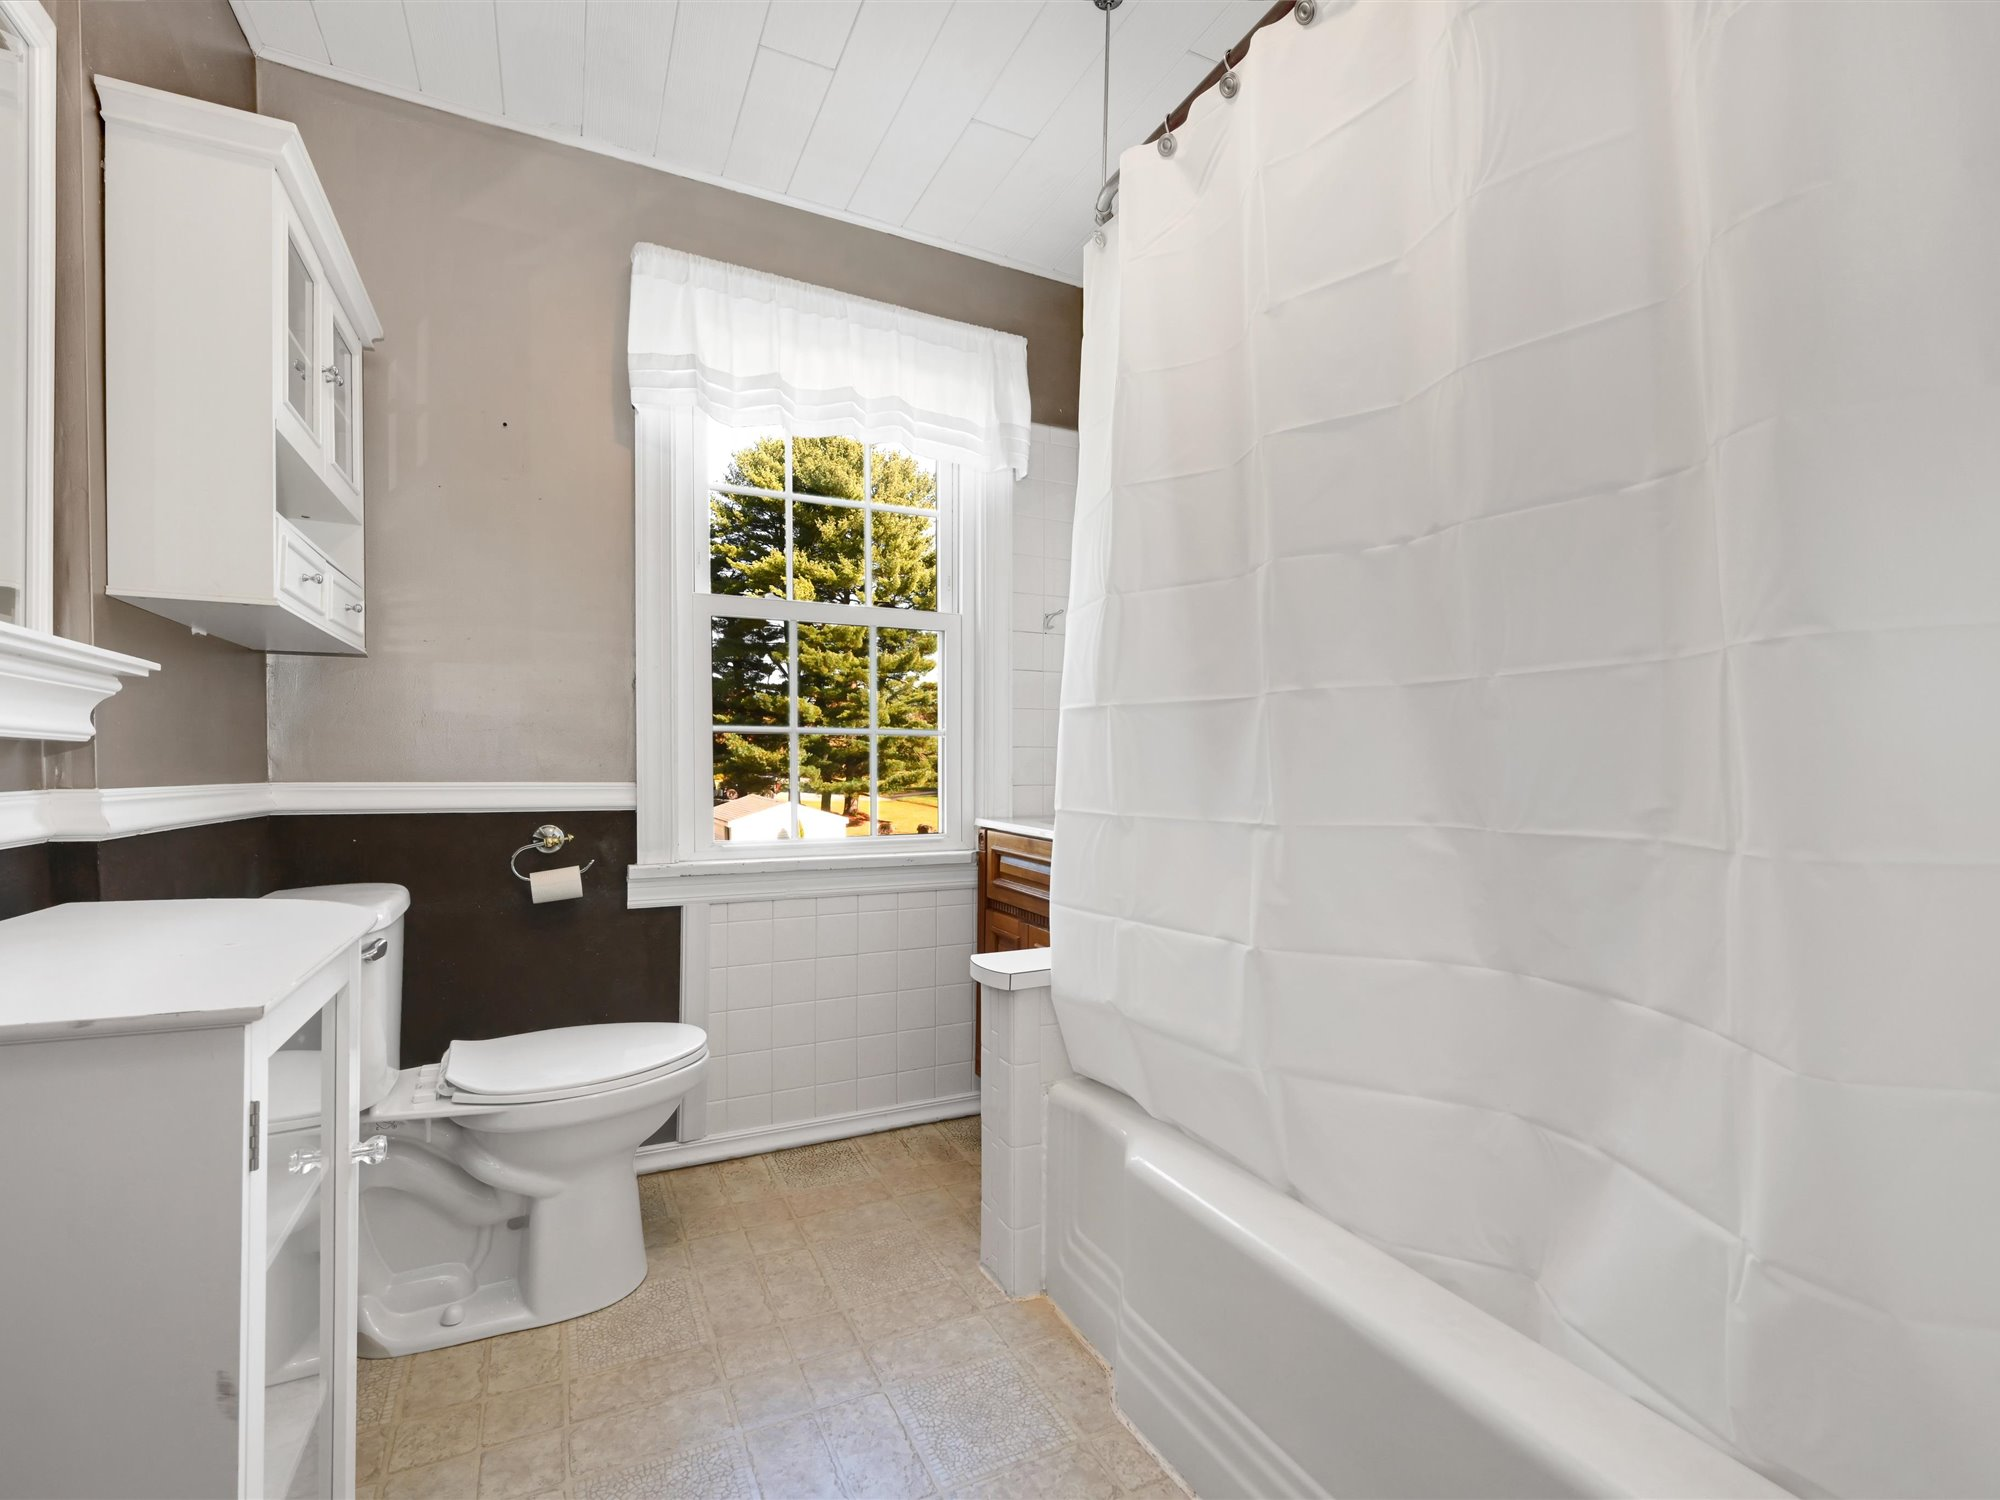 111 Pine Street - Full Bathroom